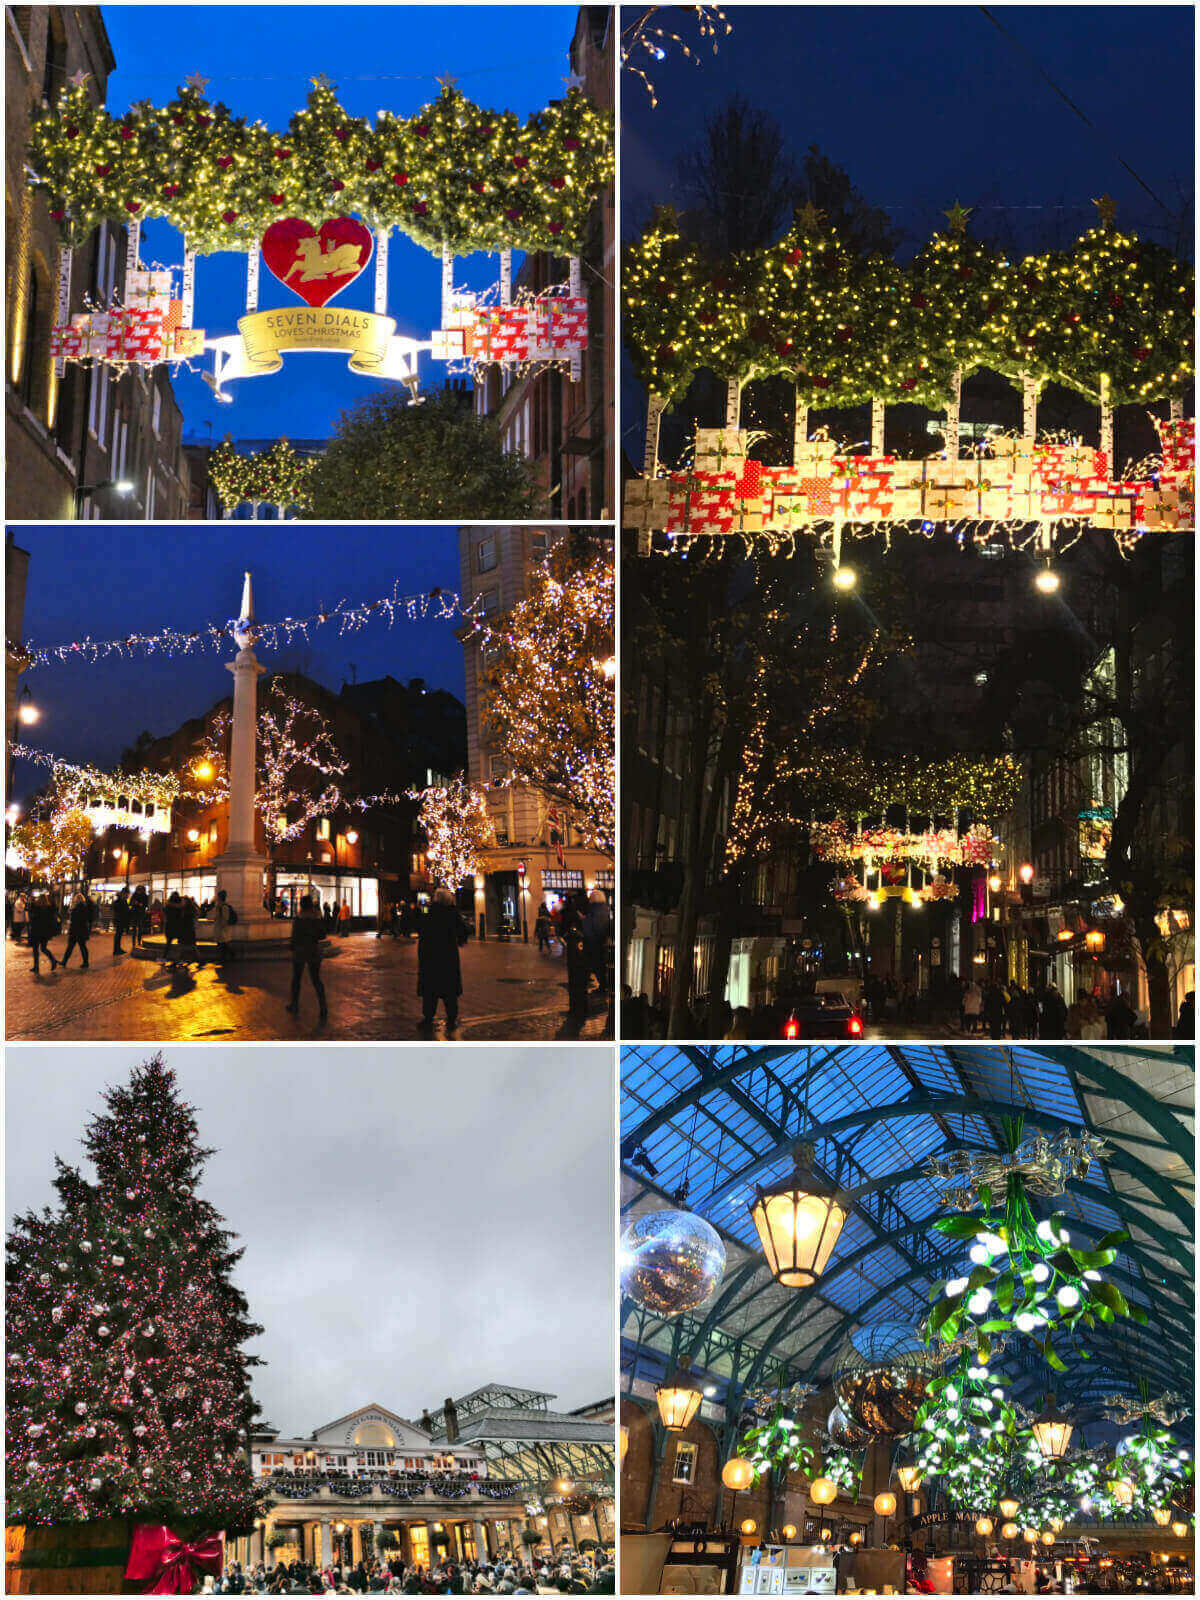 Christmas in Covent Garden, London